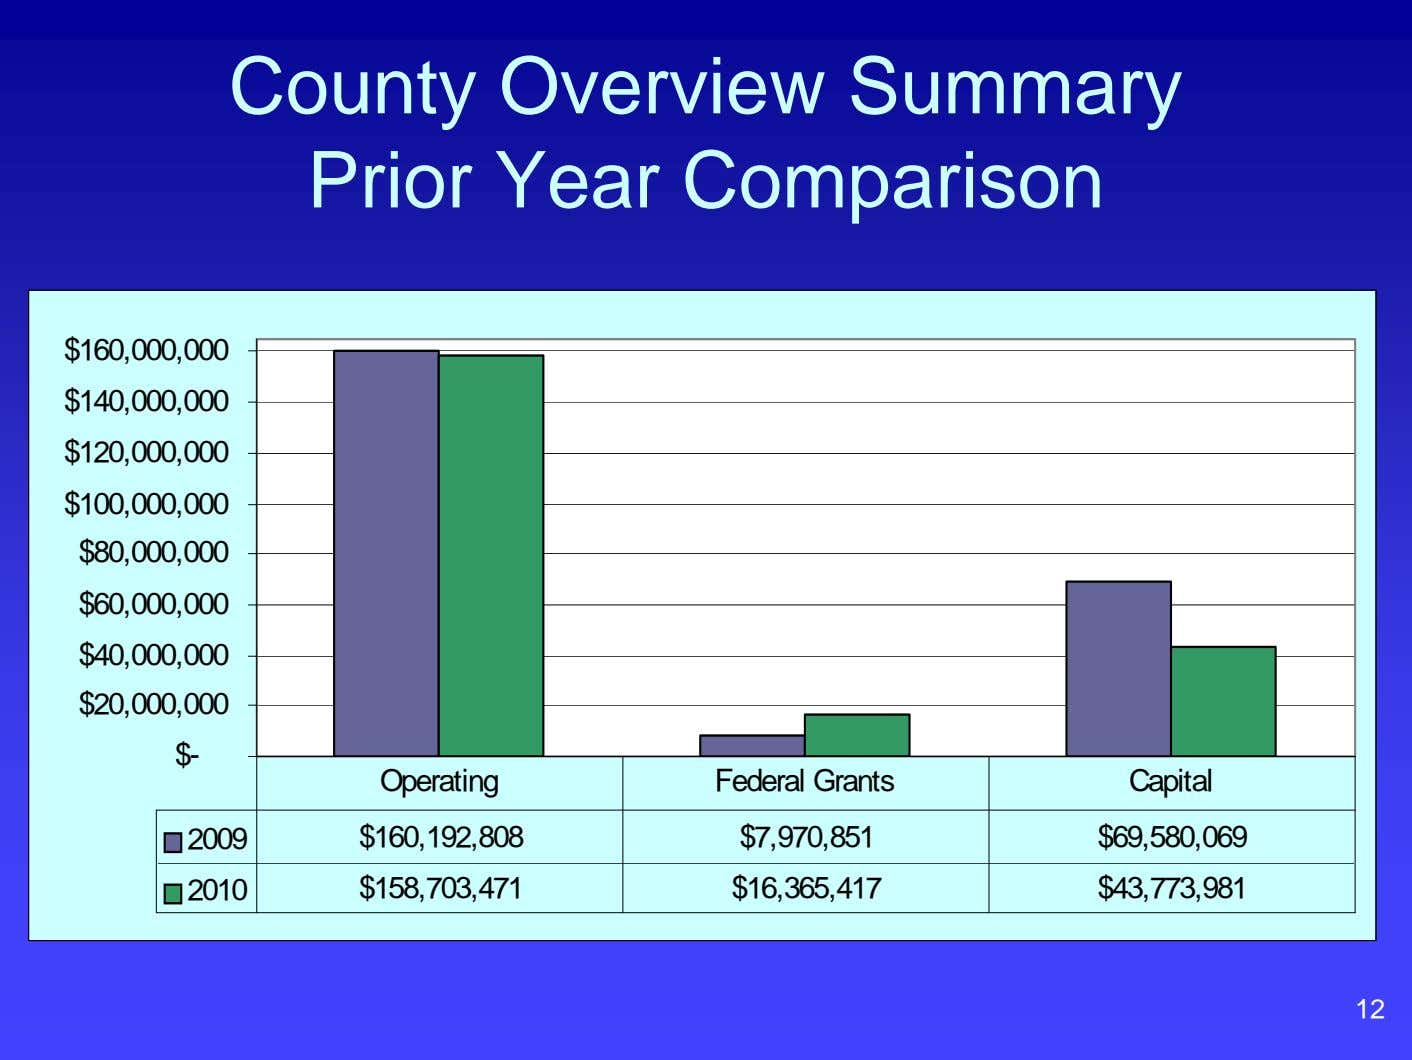 County Overview Summary Prior Year Comparison $160,000,000 $140,000,000 $120,000,000 $100,000,000 $80,000,000